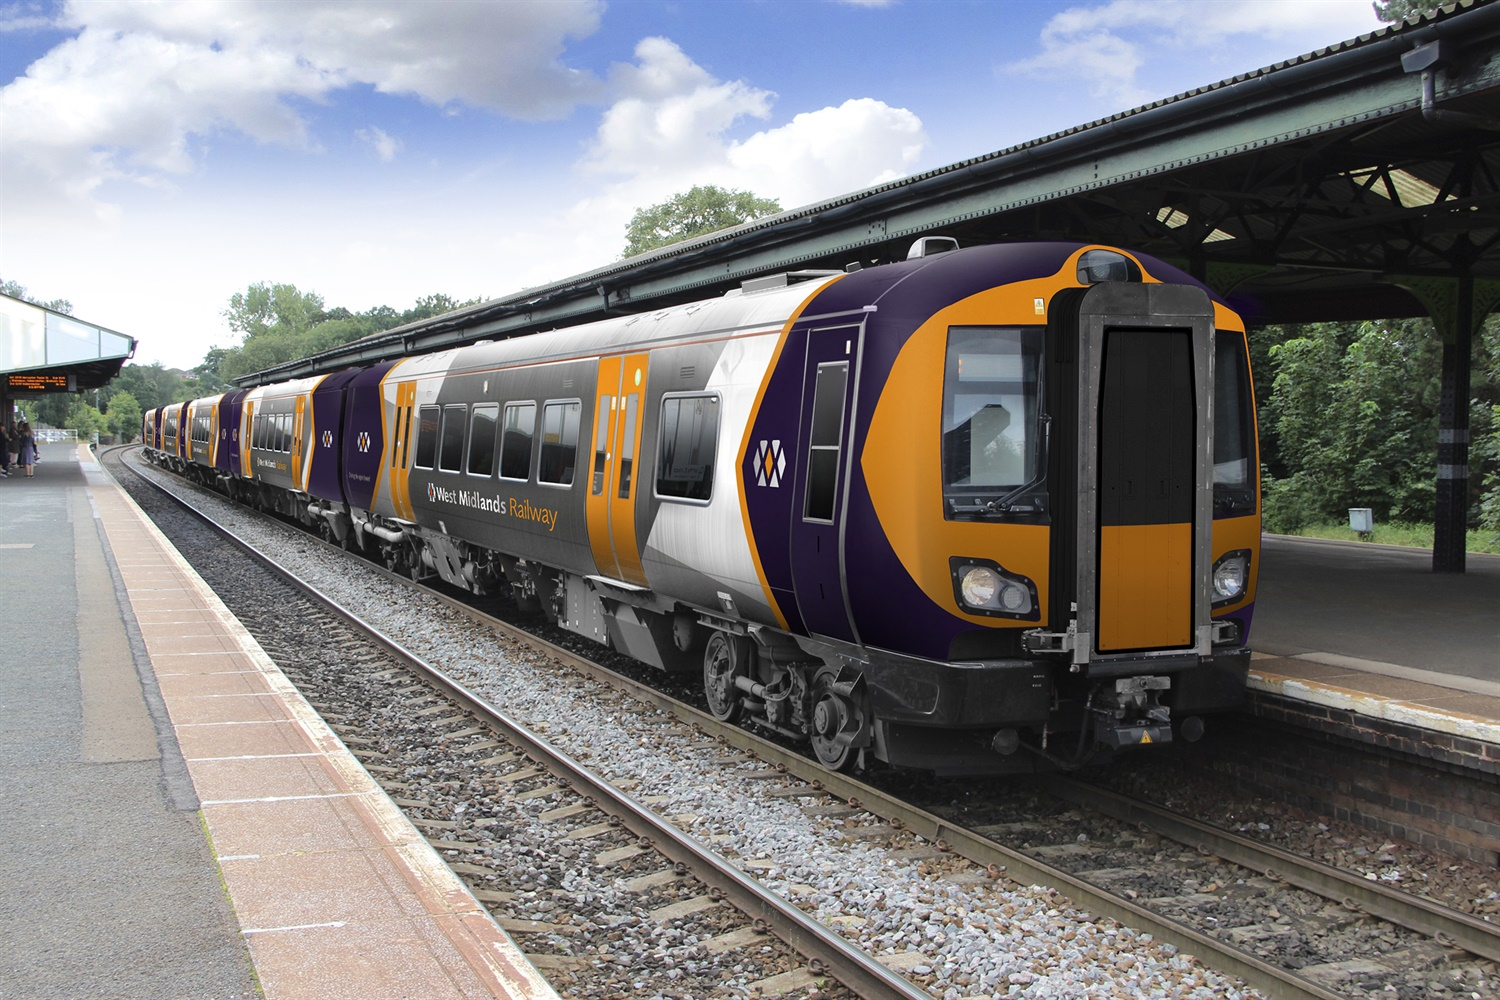 WMR unveils new-look livery designs for West Midlands rolling stock